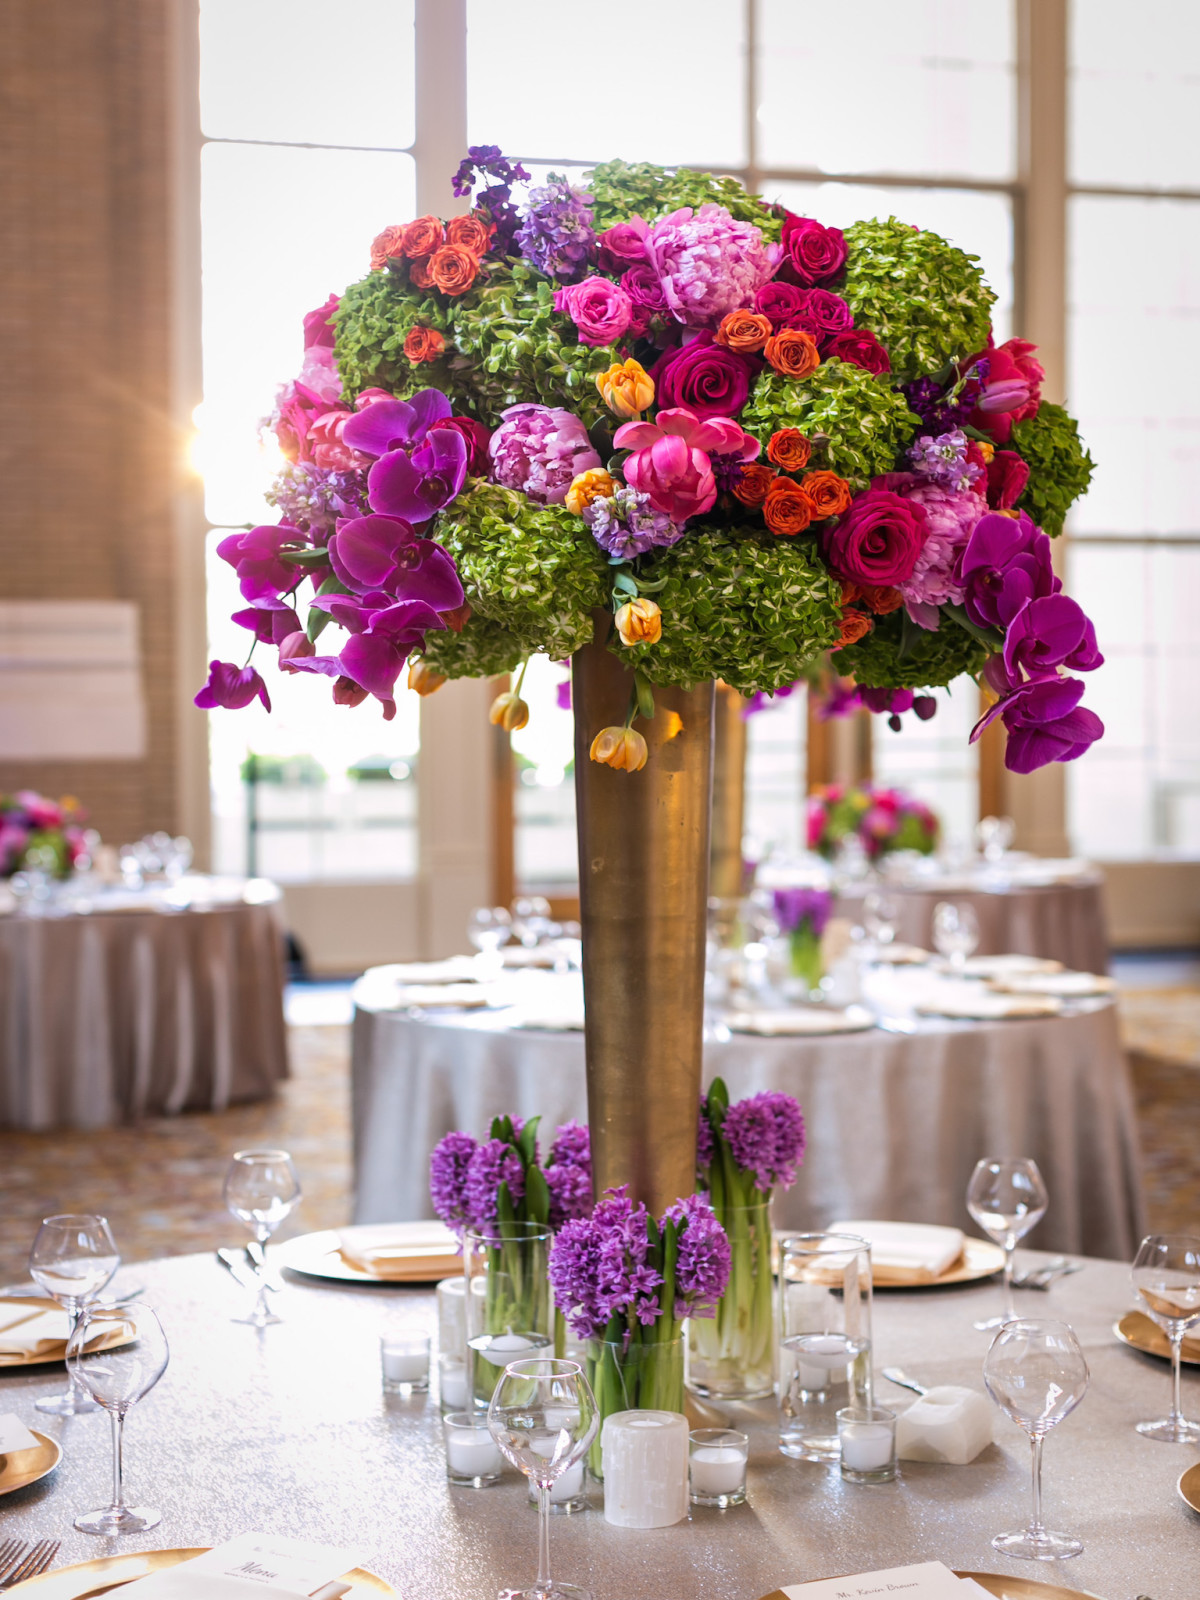 Monica Kitt Wedding, arrangement